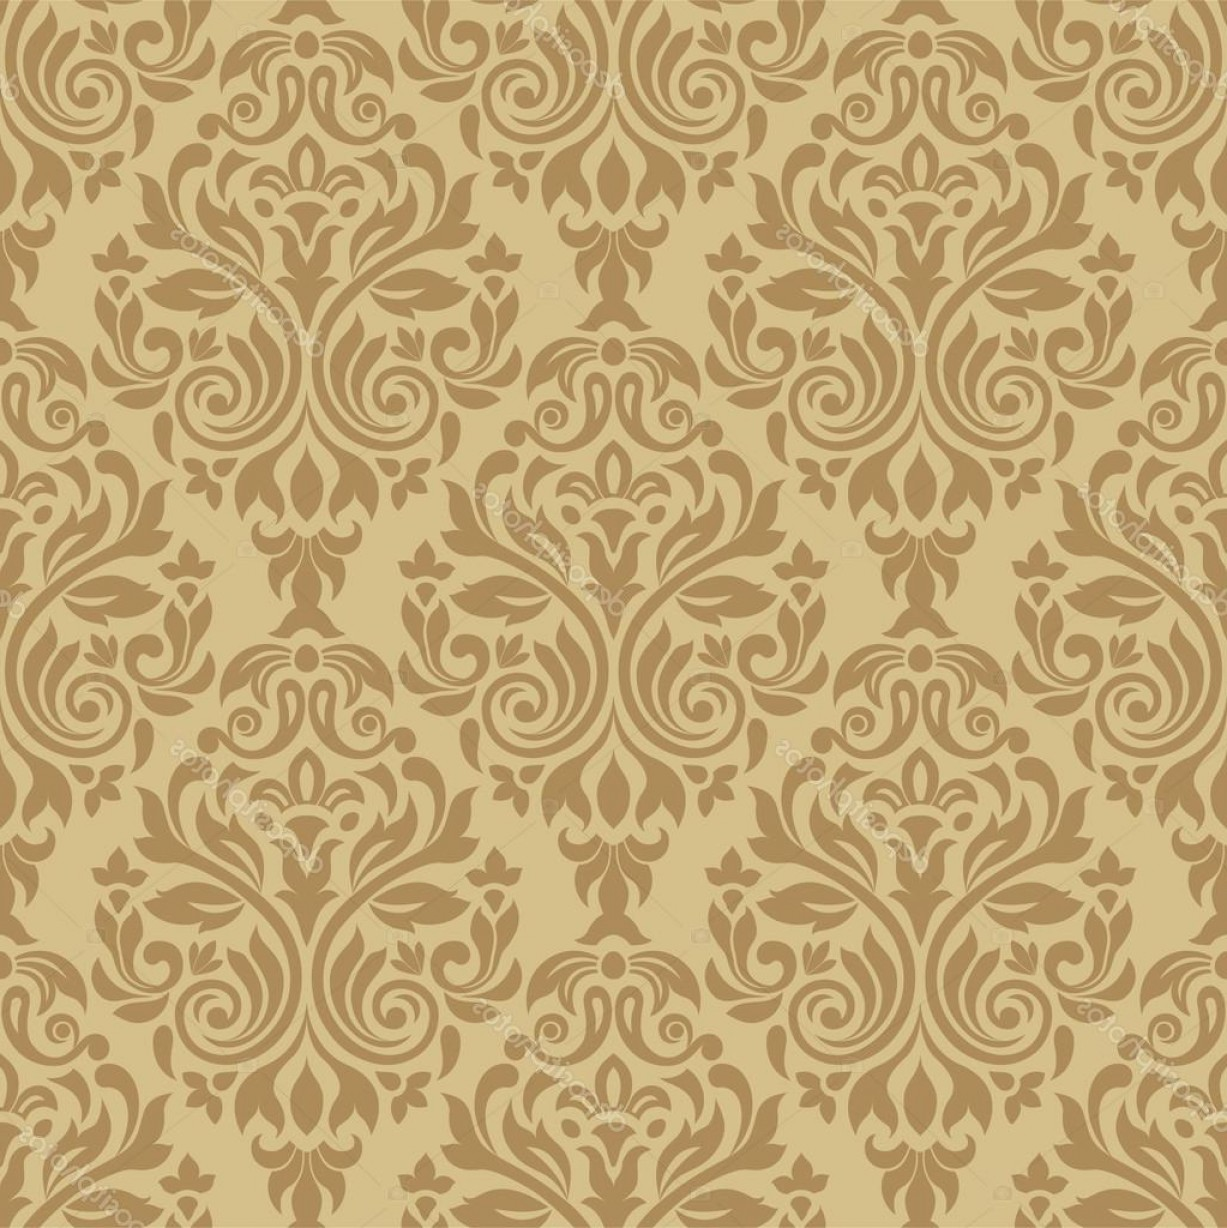 Victorian Motif Vector: Stock Illustration Vintage Seamless Pattern With Victorian